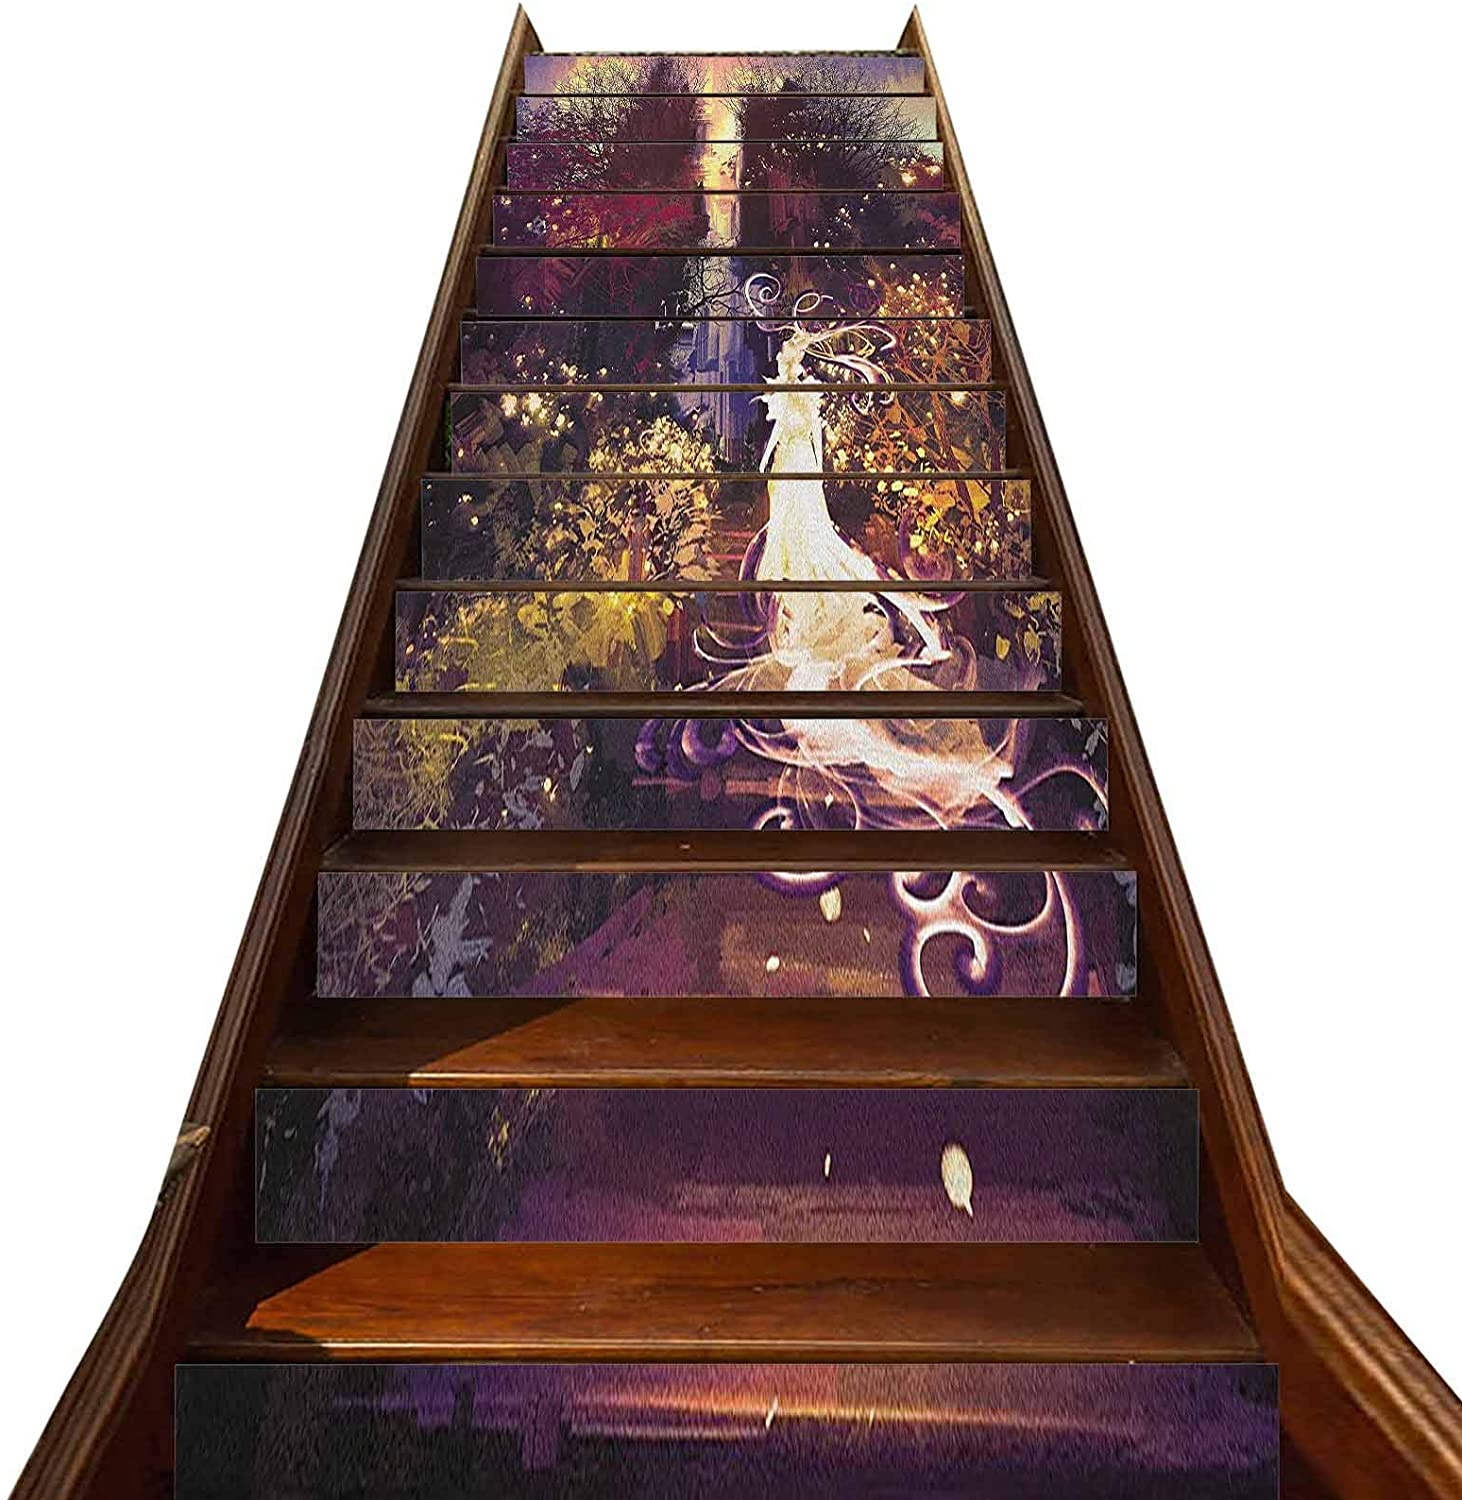 3D Fantasy Pattern Stair Stickers 13 PCS,Surreal Silhouette of Elf Lady Figure on Stair in Garden Expressionist Artwork Self-Adhesive Refurbished Staircase Murals,for Hotel Home Staircase Riser Decor